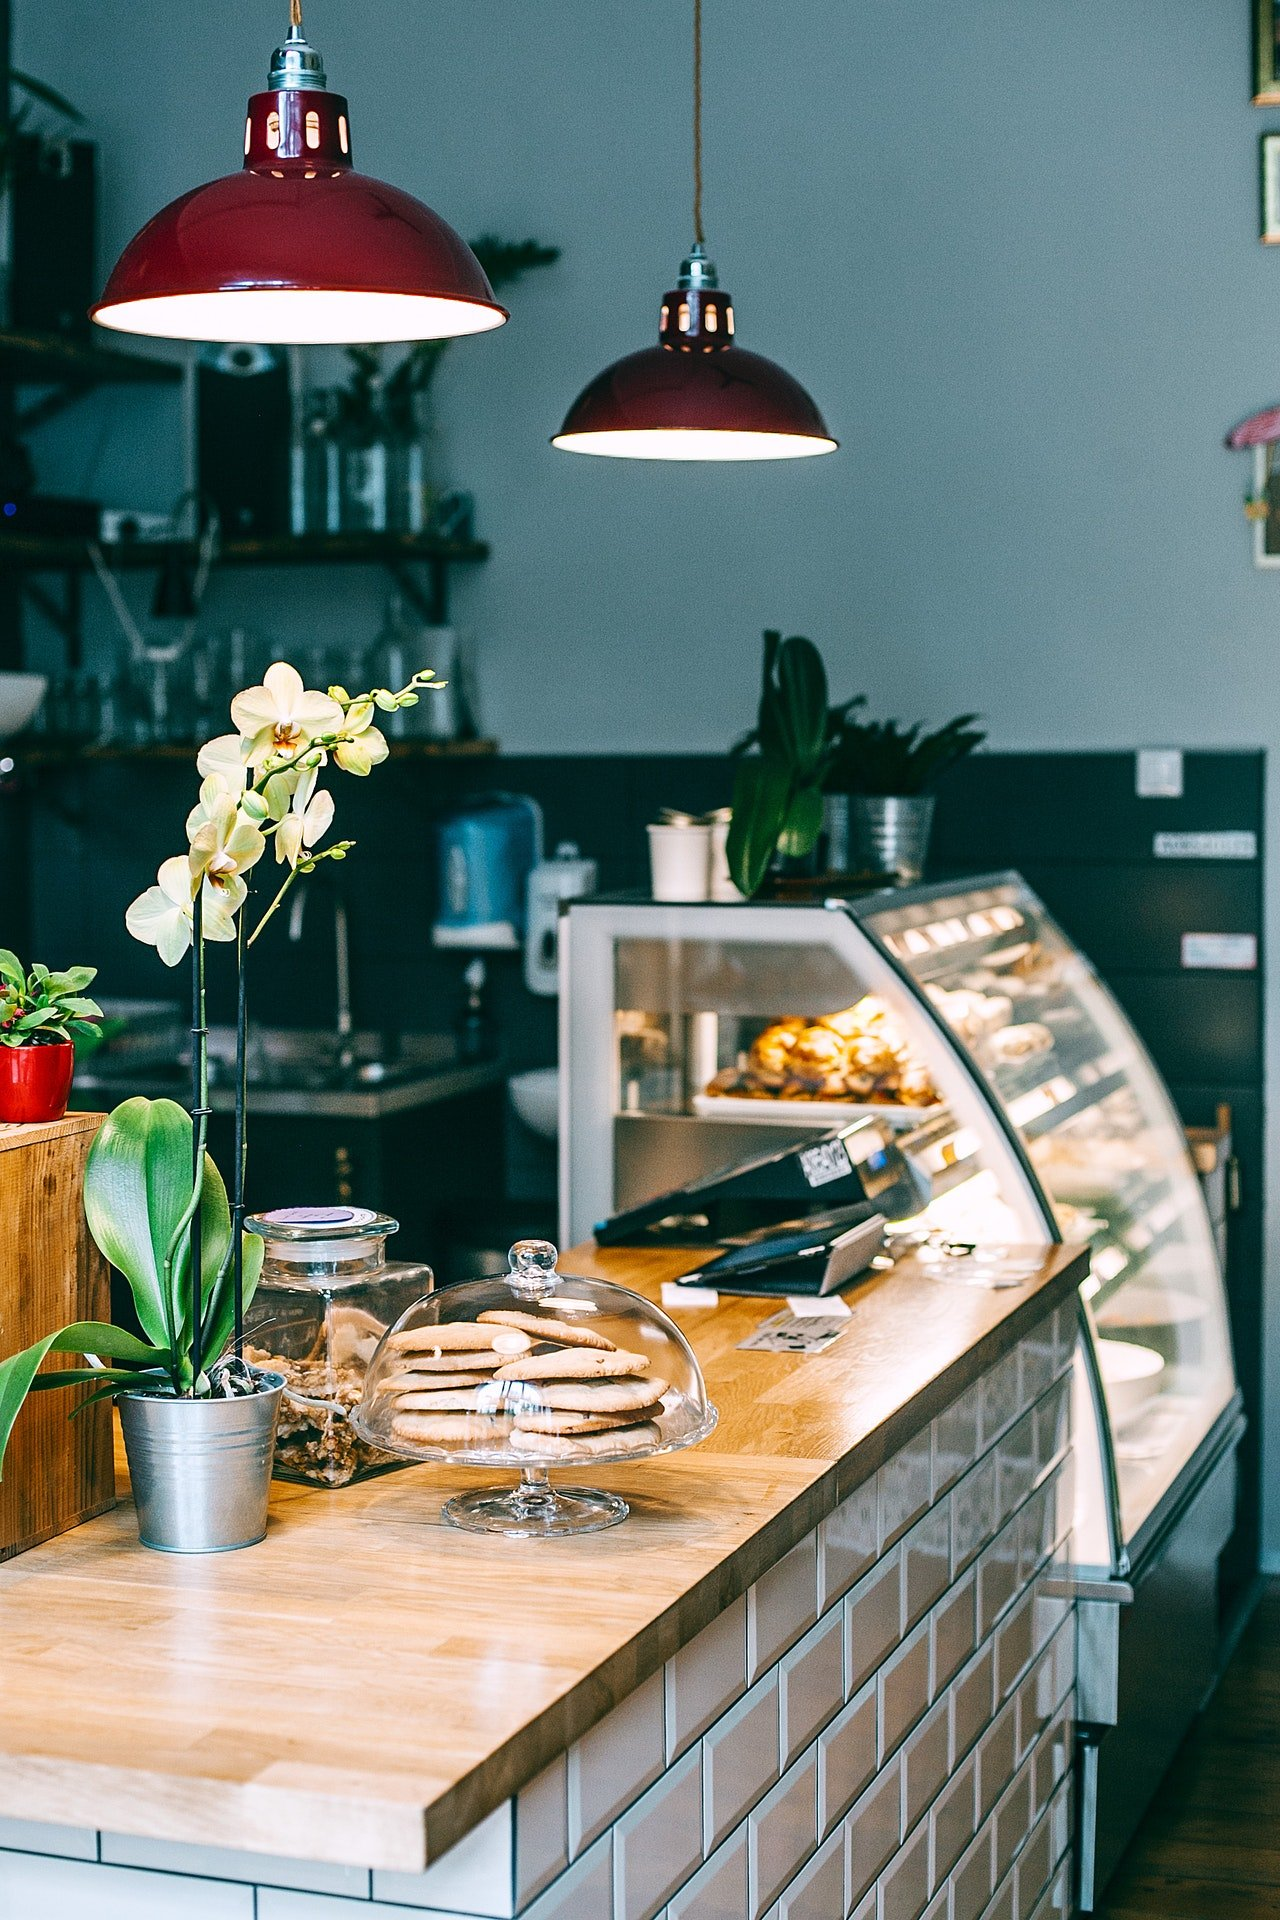 Mia opened her own bakery after saving for years.   Source: Pexels